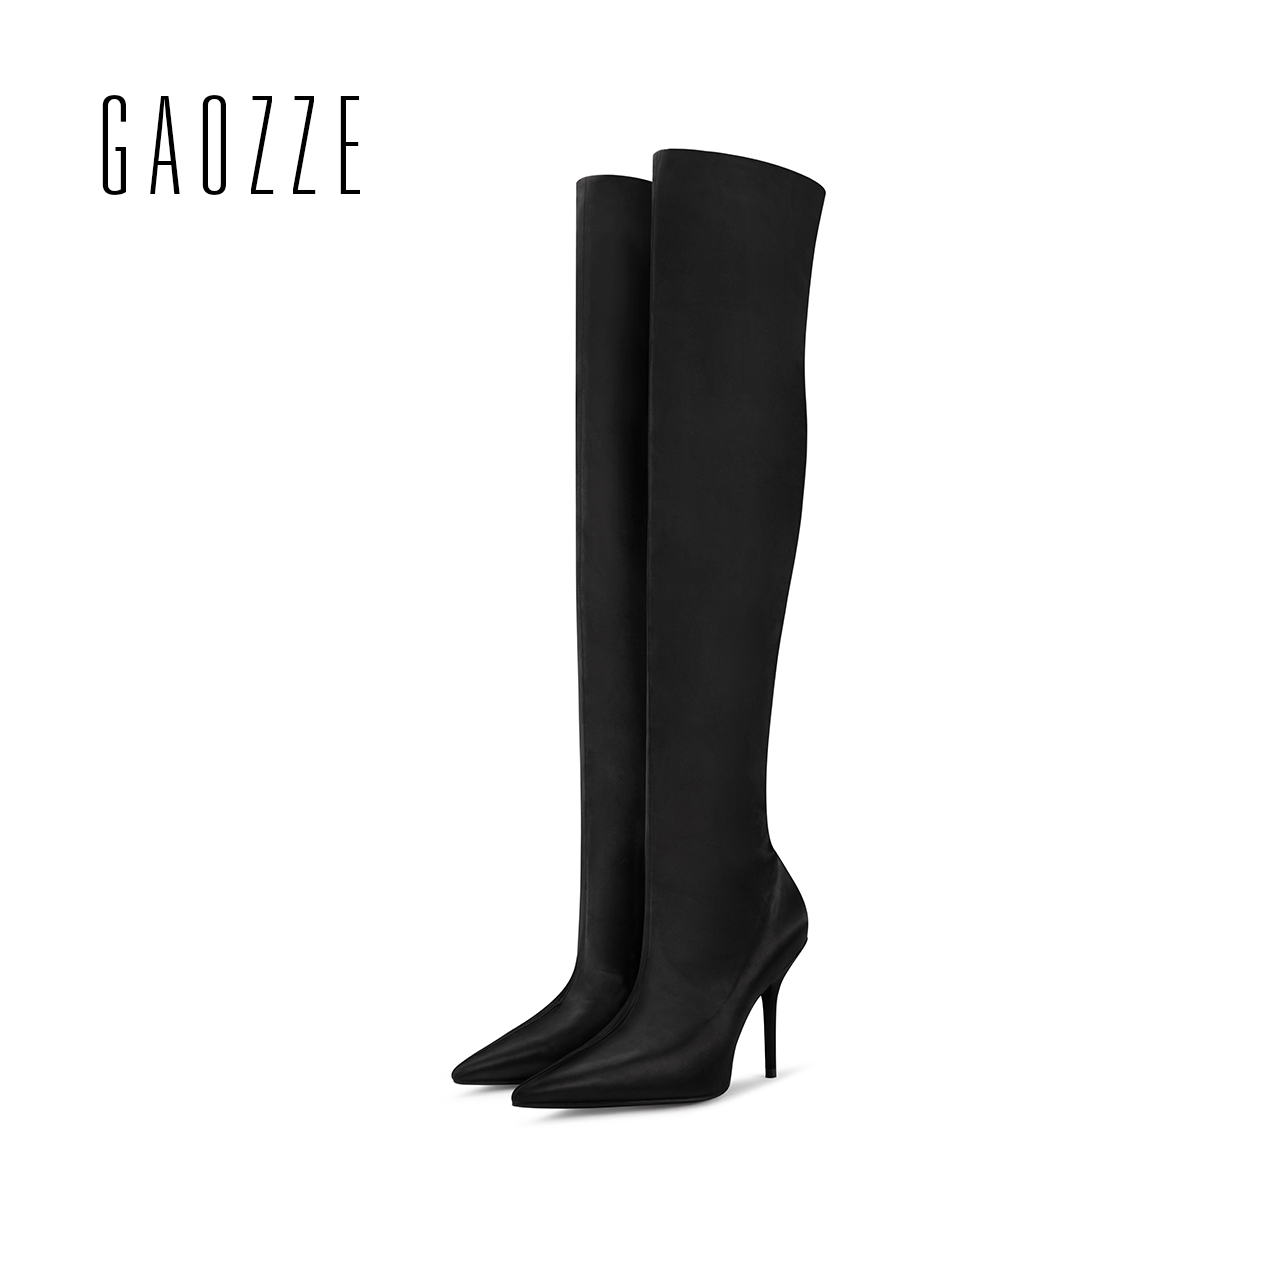 GAOZZE women over-the-knee boots sexy thin high heels boots pointed toe women shoes elastic Fashion Boots 2017 winter new new arrival high quality over the knee women boots sexy pointed toe shoes stiletto high heels blue denim jeans women boots